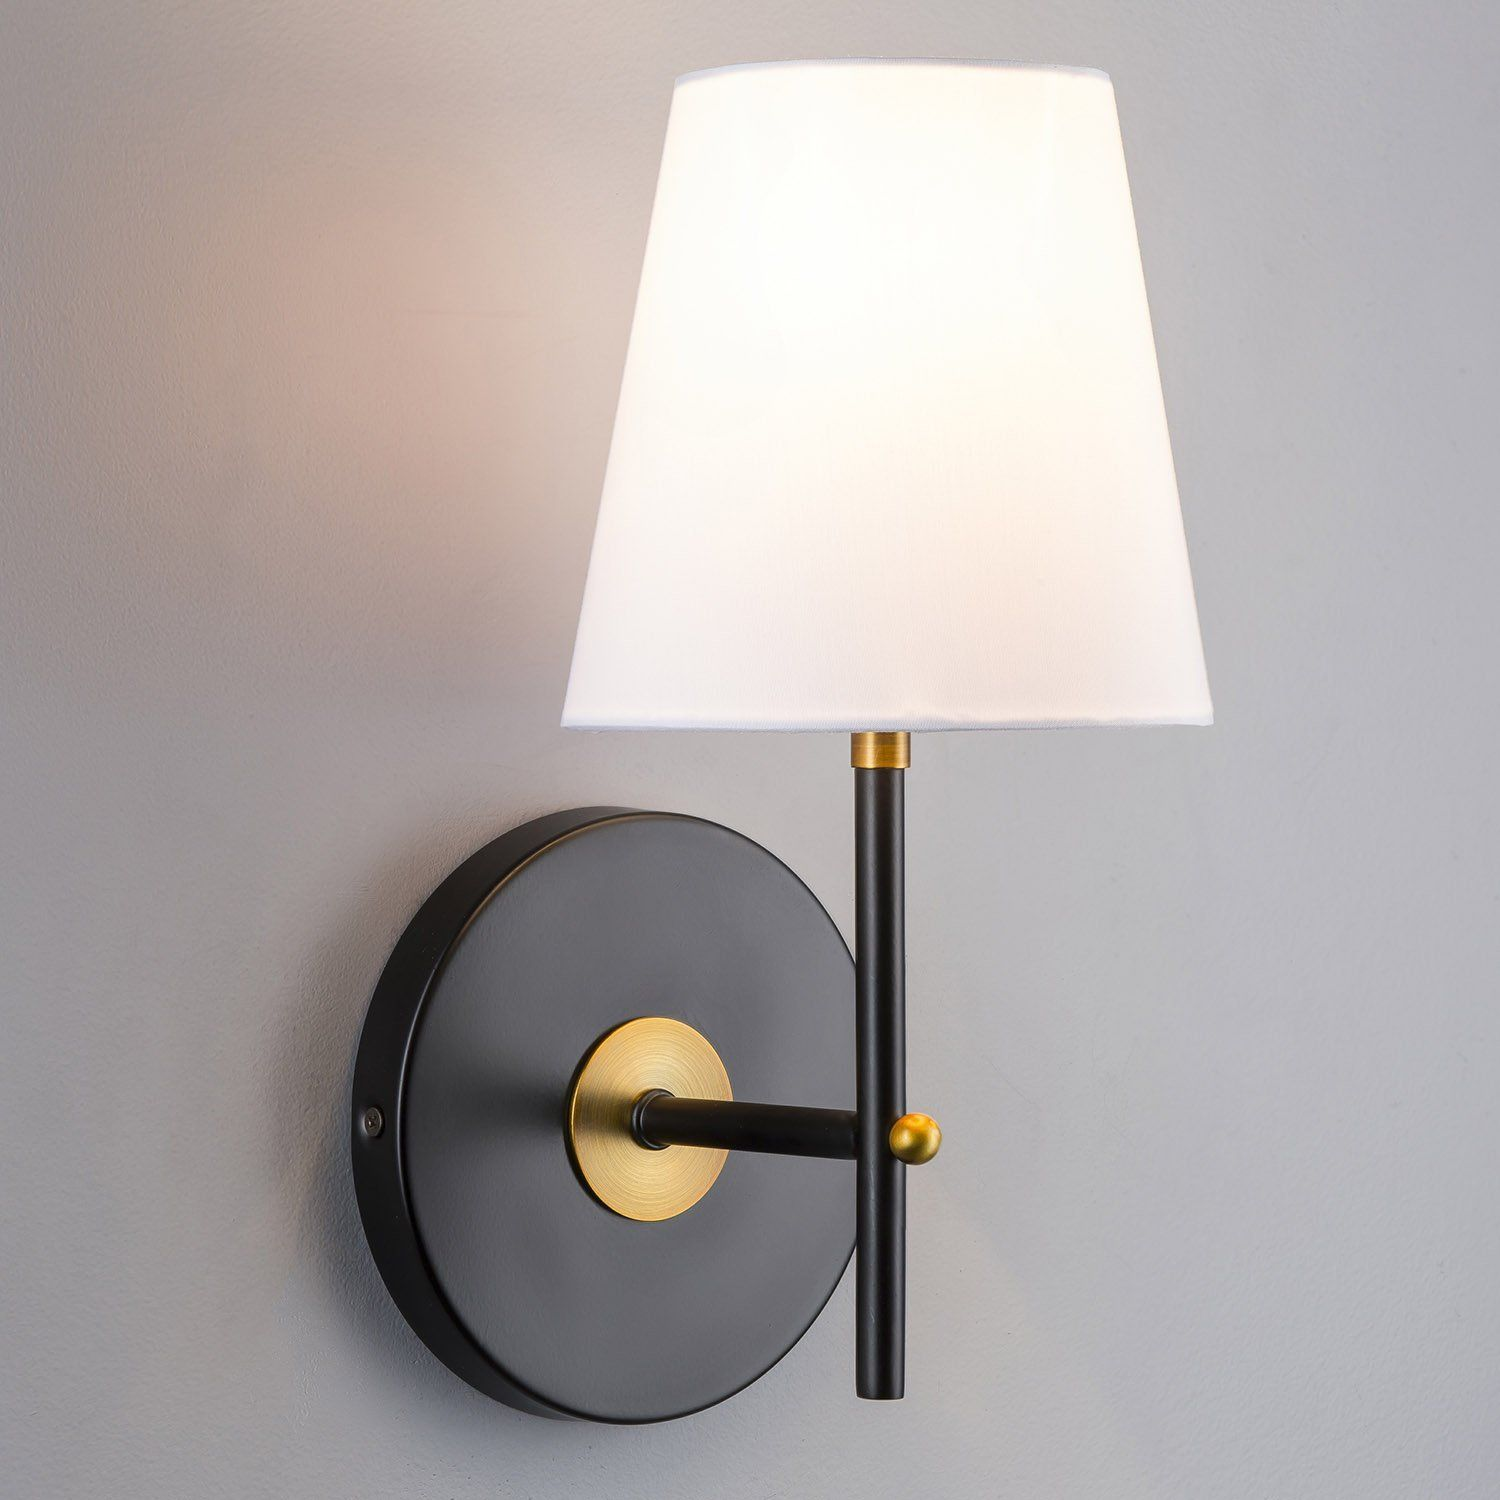 Tamb Sconce Black With Antique Brass One Light Fixture